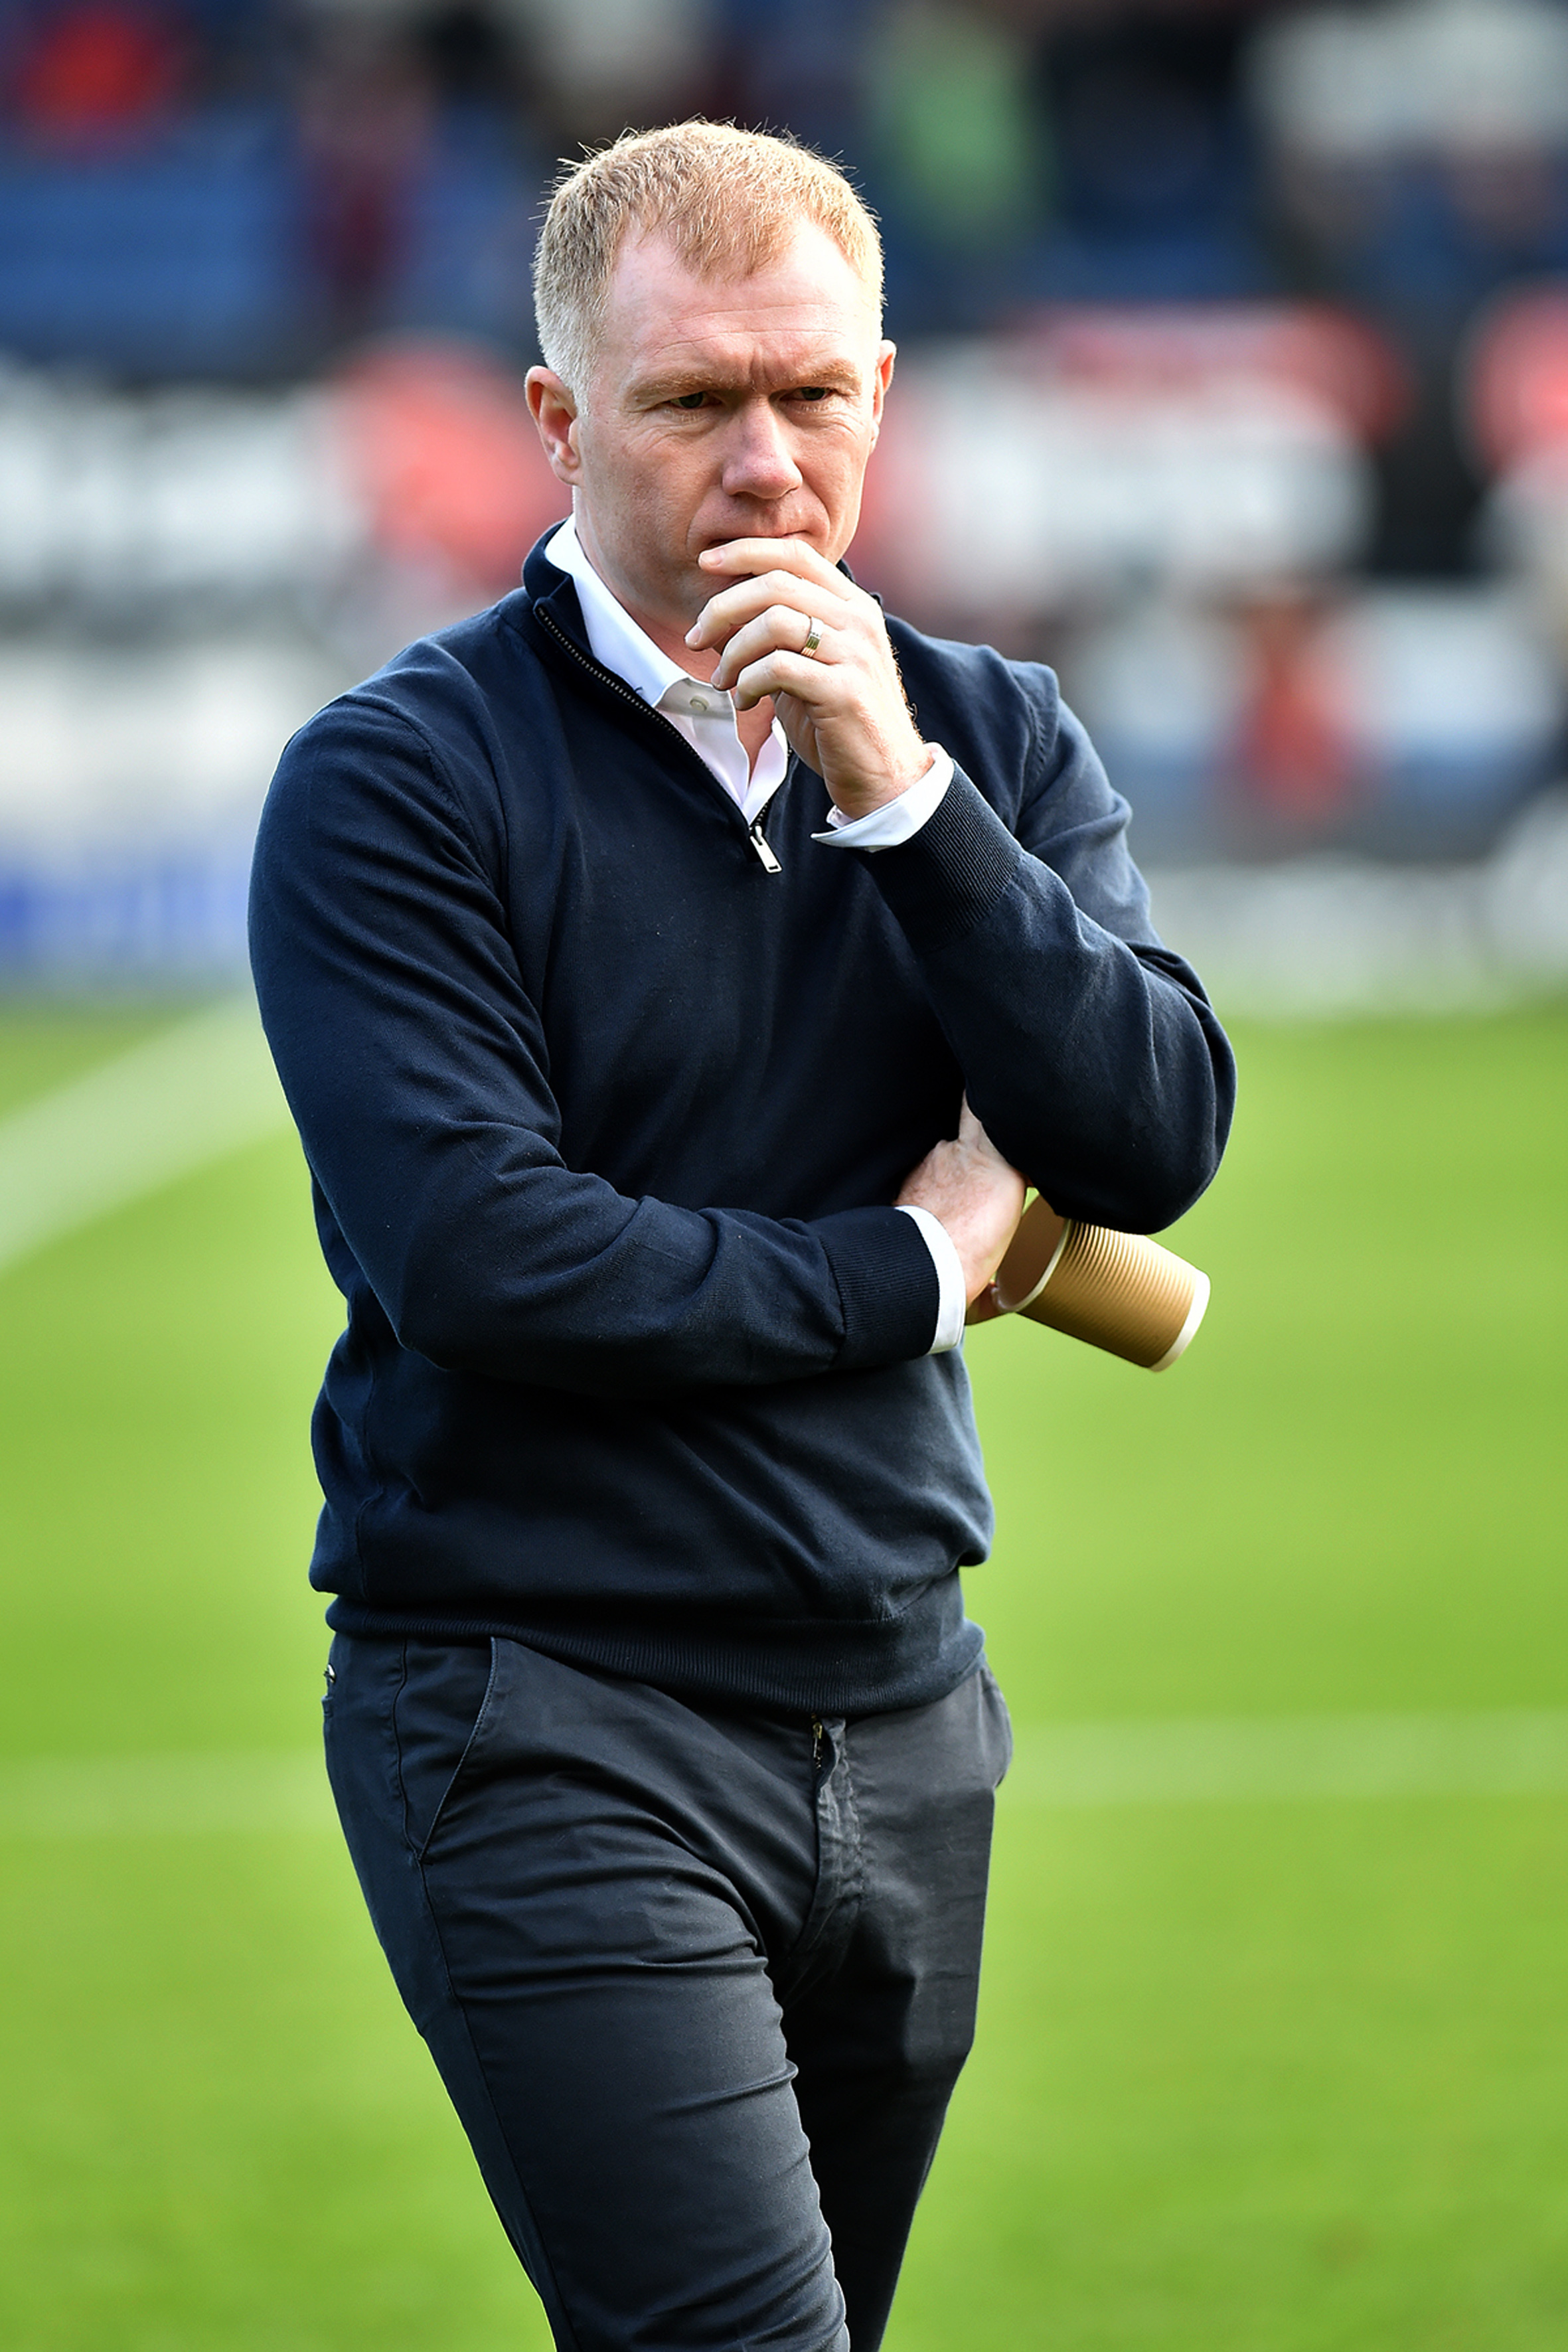 LATE BLOW: Oldham boss Paul Scholes saw his side concede in stoppage time against Stevenage